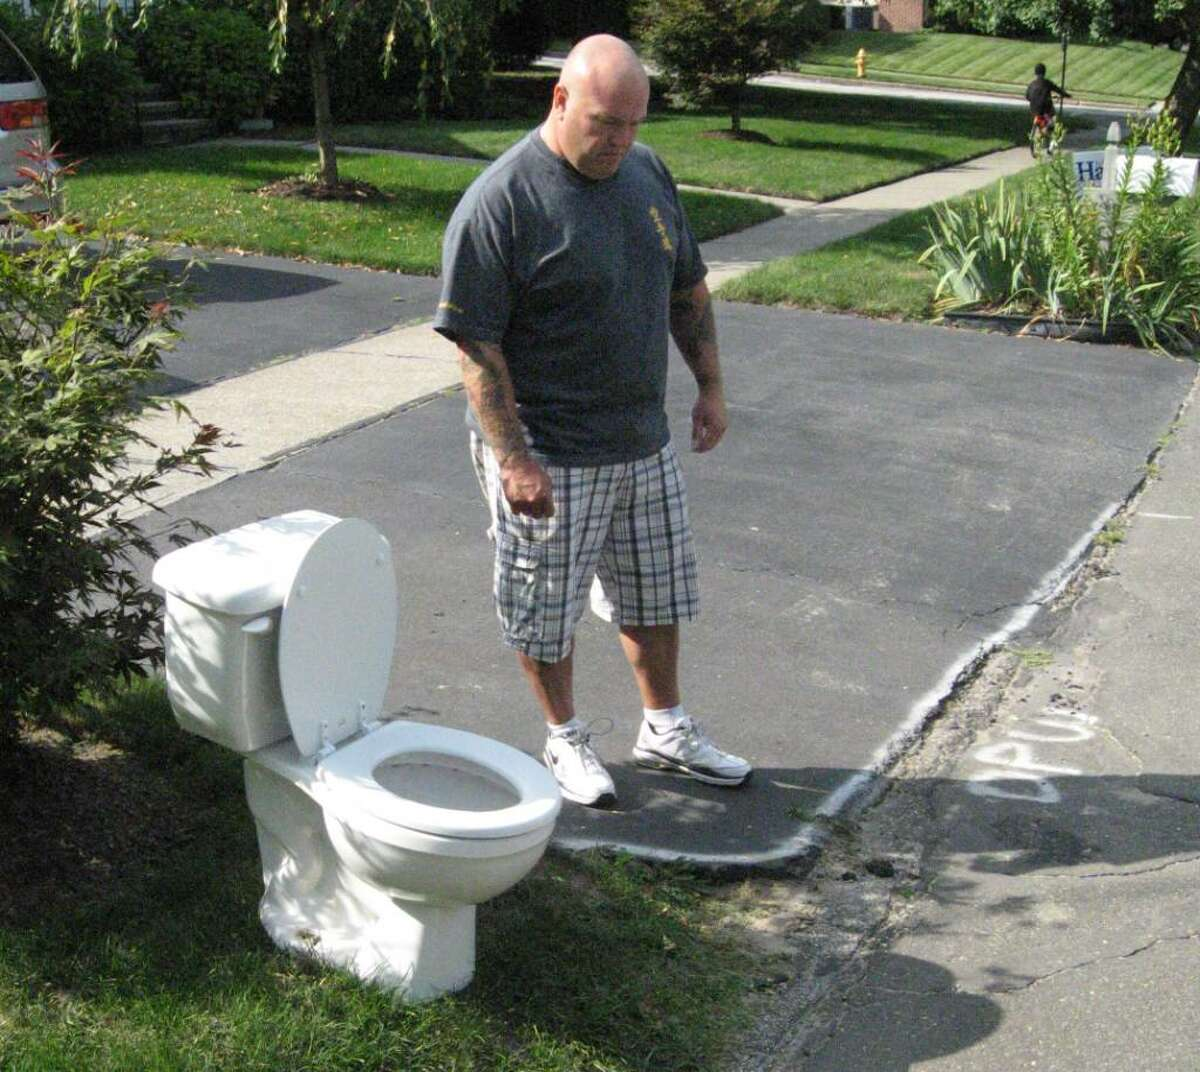 Grant Dalling of 385 Bunnyview Drive, Stratford, looks at snowplow damage to his driveway that the town has yet to repair. The toilet is his message of silent protest to Stratford officials.